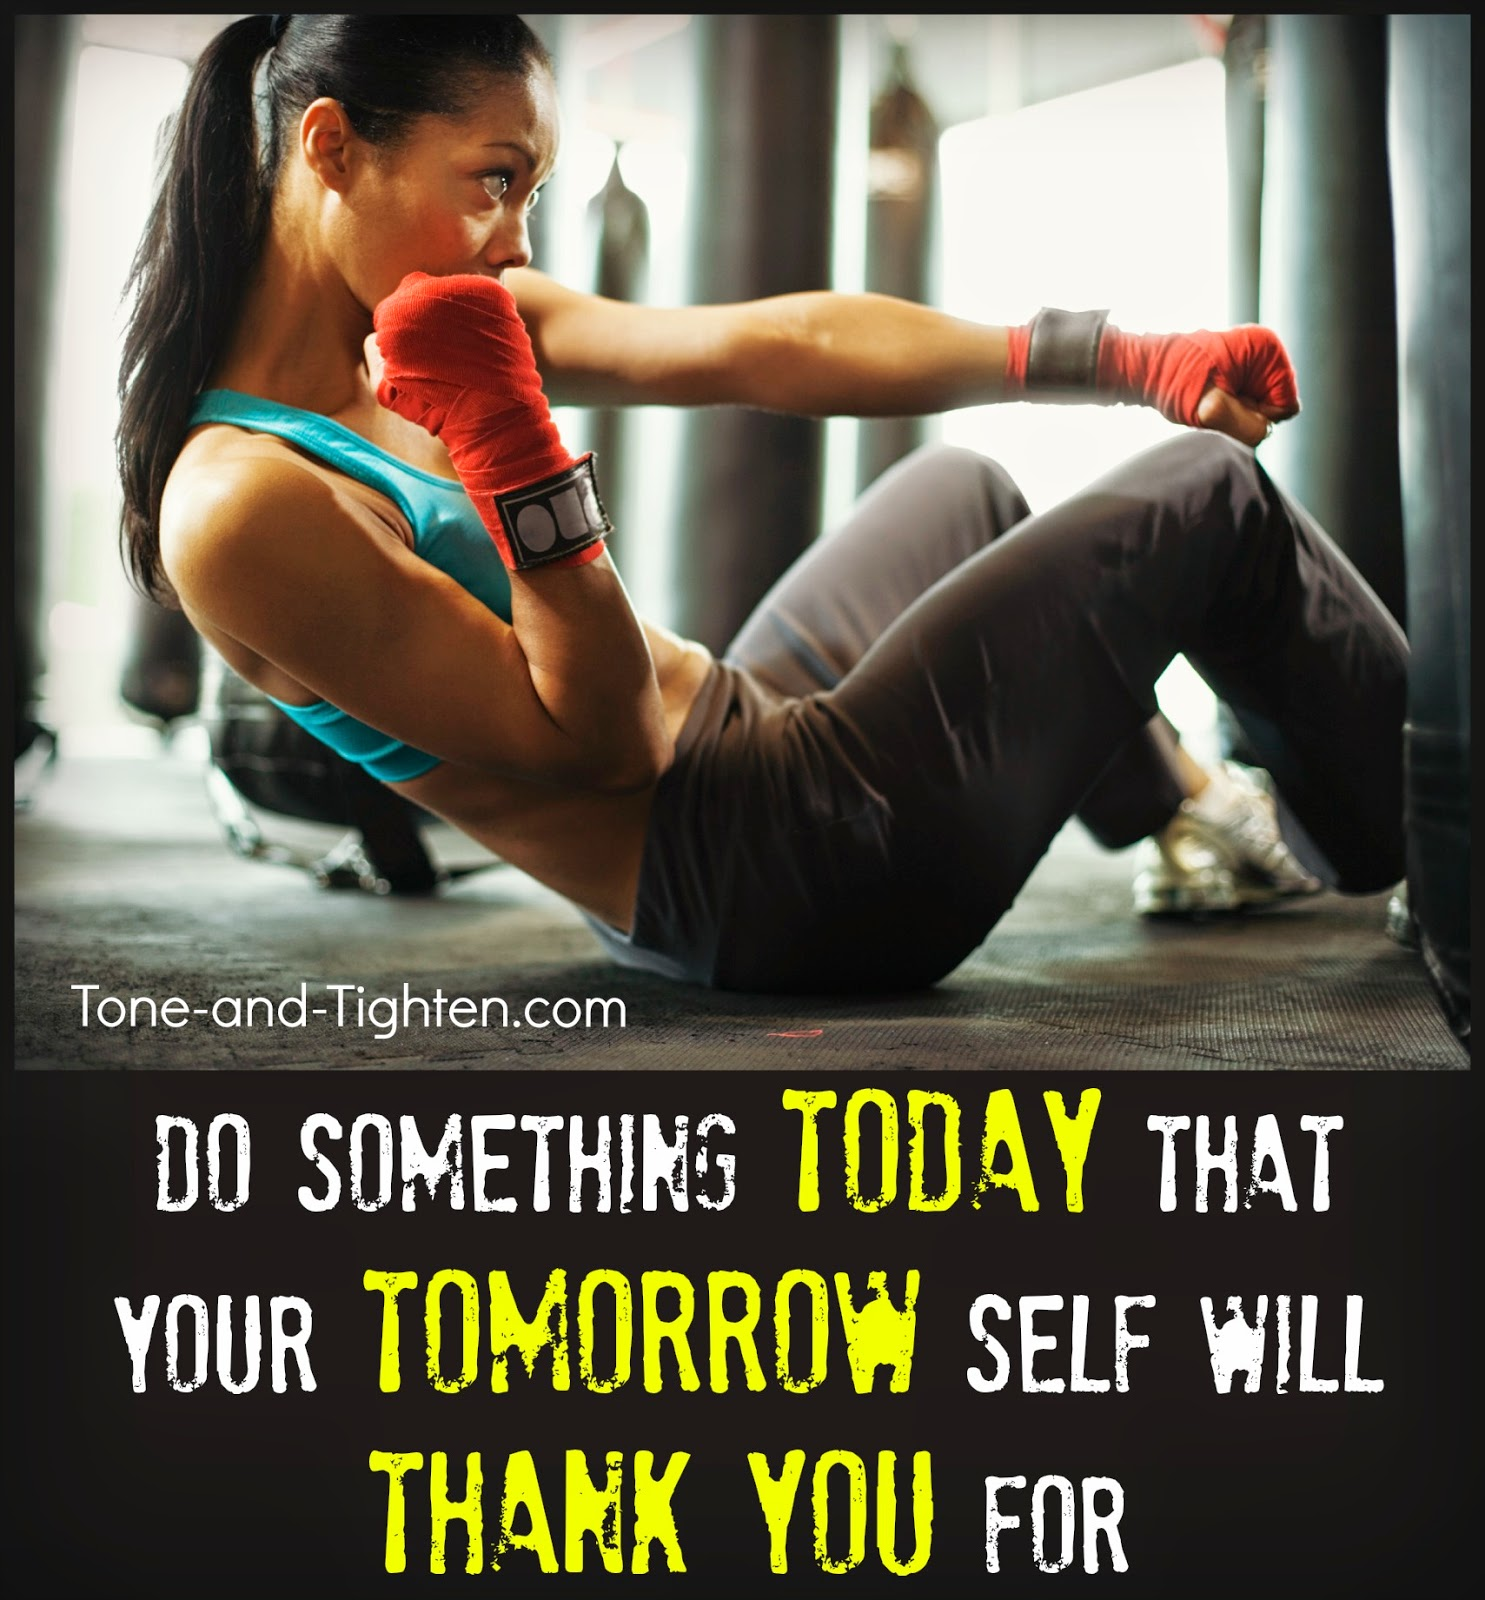 https://tone-and-tighten.com/2014/02/fitness-motivation-do-something-today-your-tomorrow-self-will-thank-you-for.html